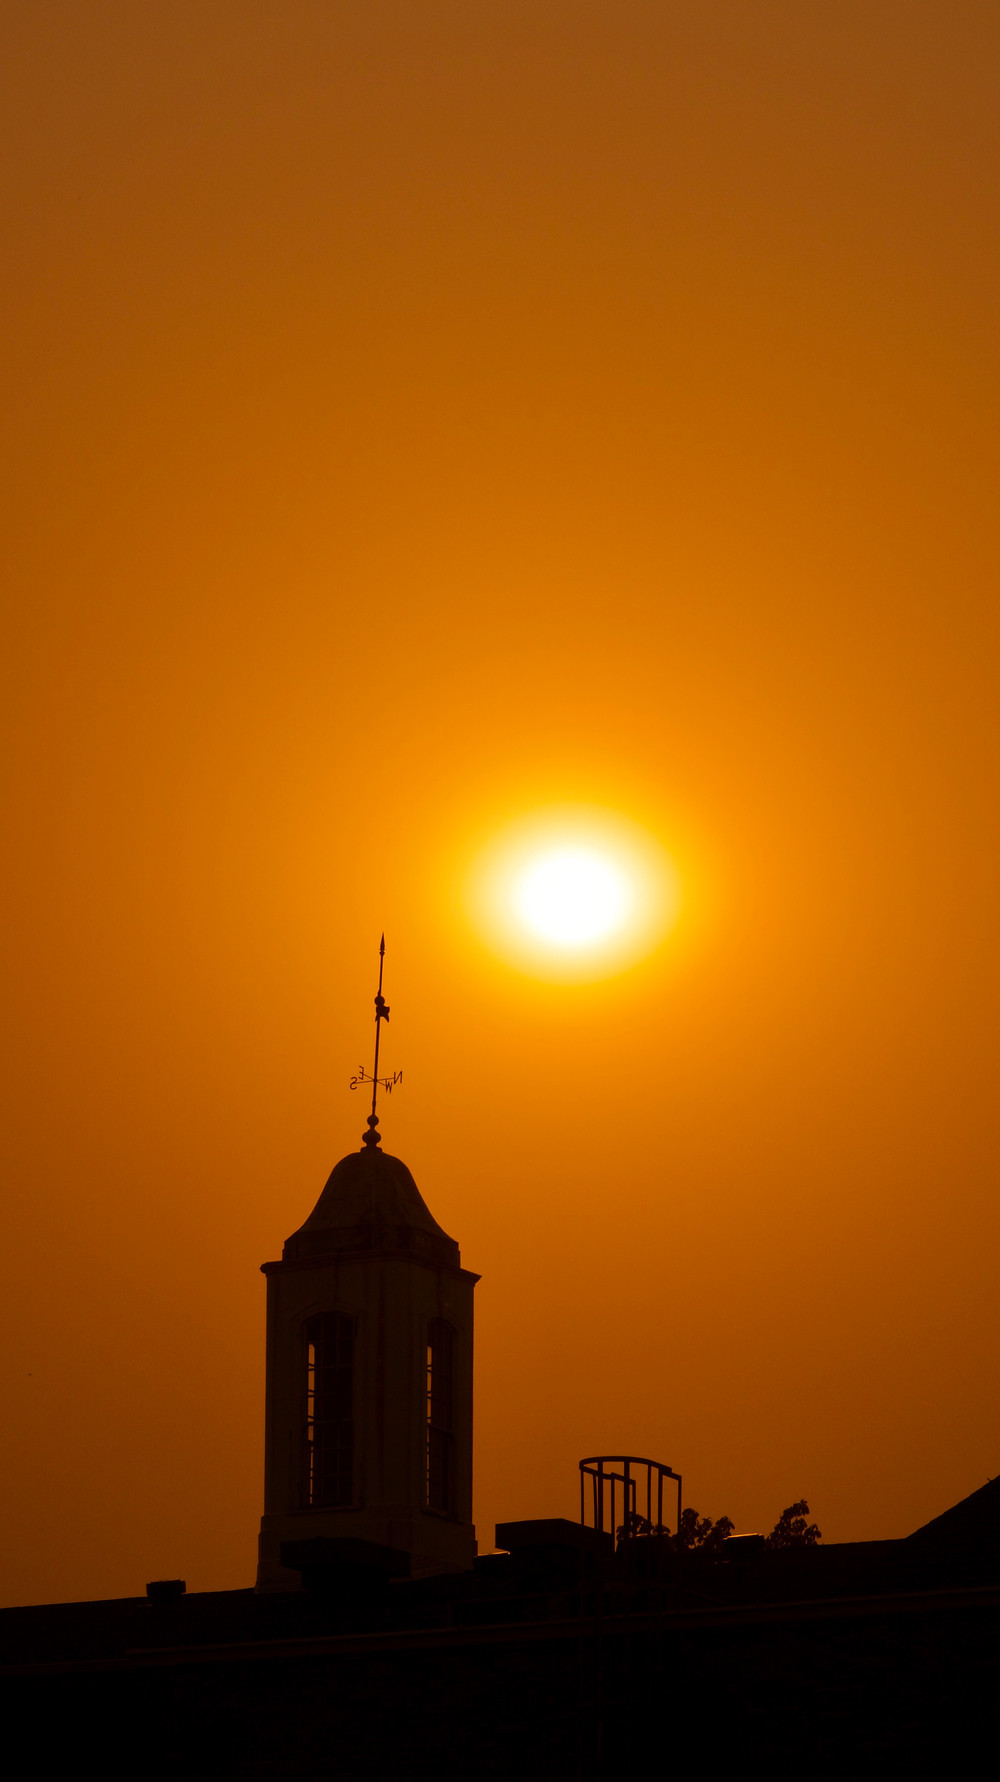 Orange skies due to the nearby fires against Smullin Hall's silhouette